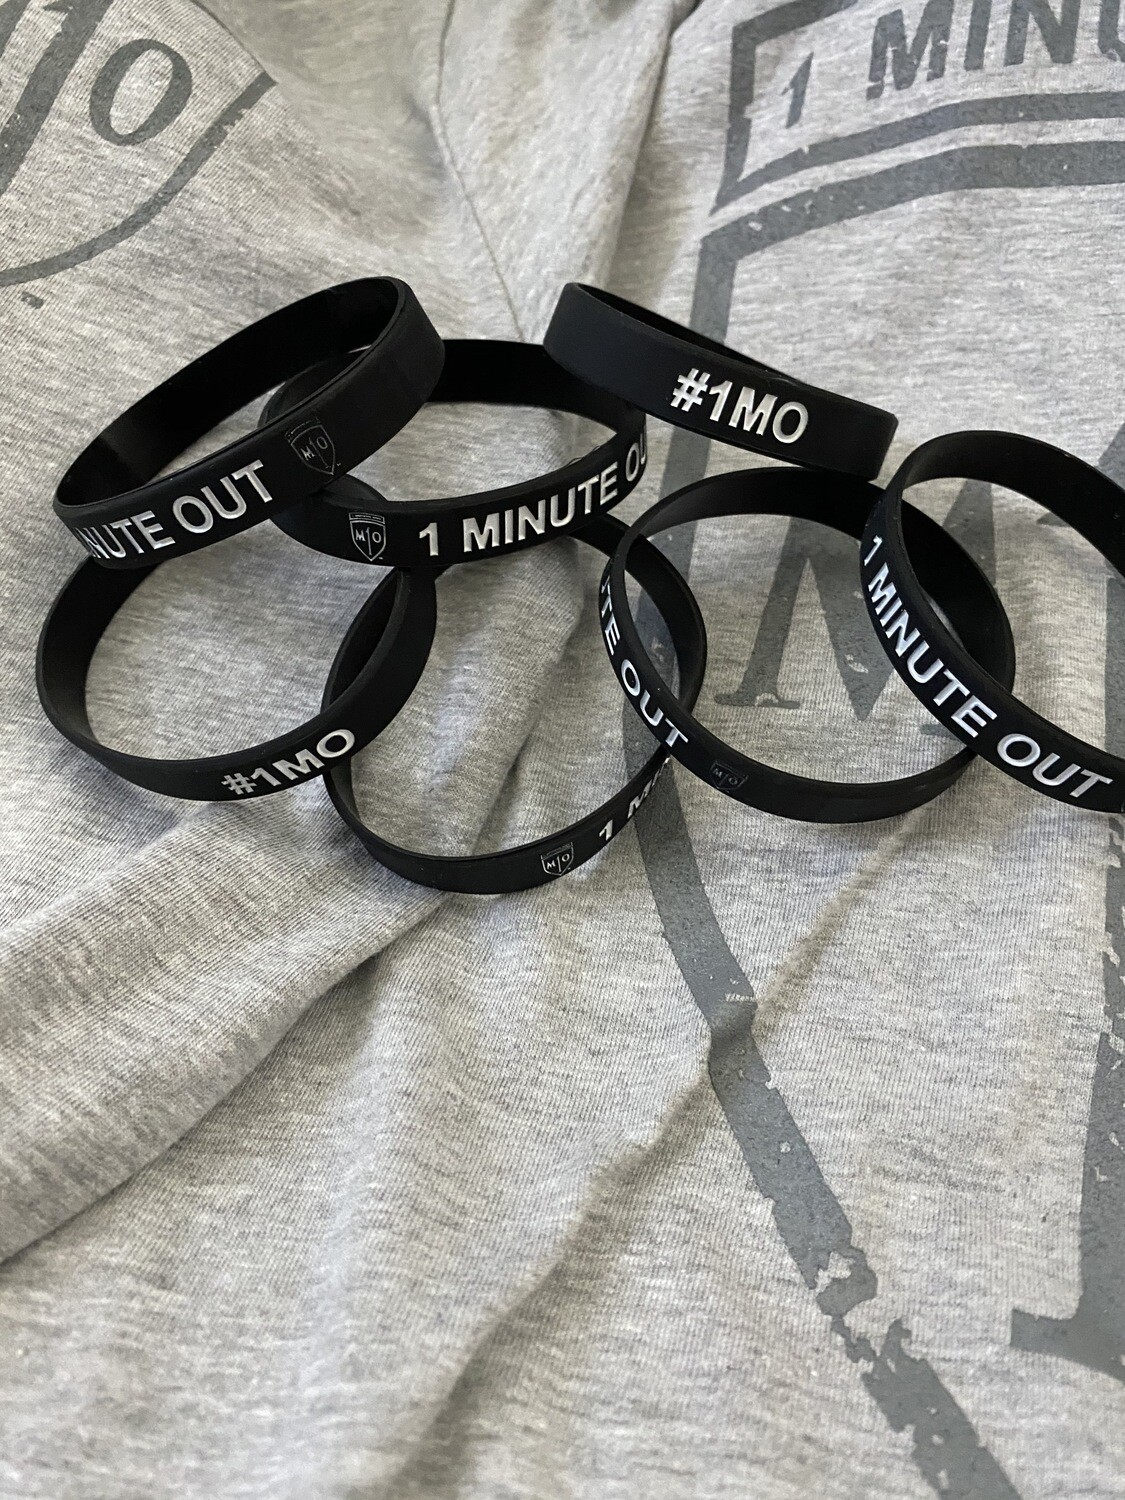 NEW - 1 Minute Out Silicone Bracelet